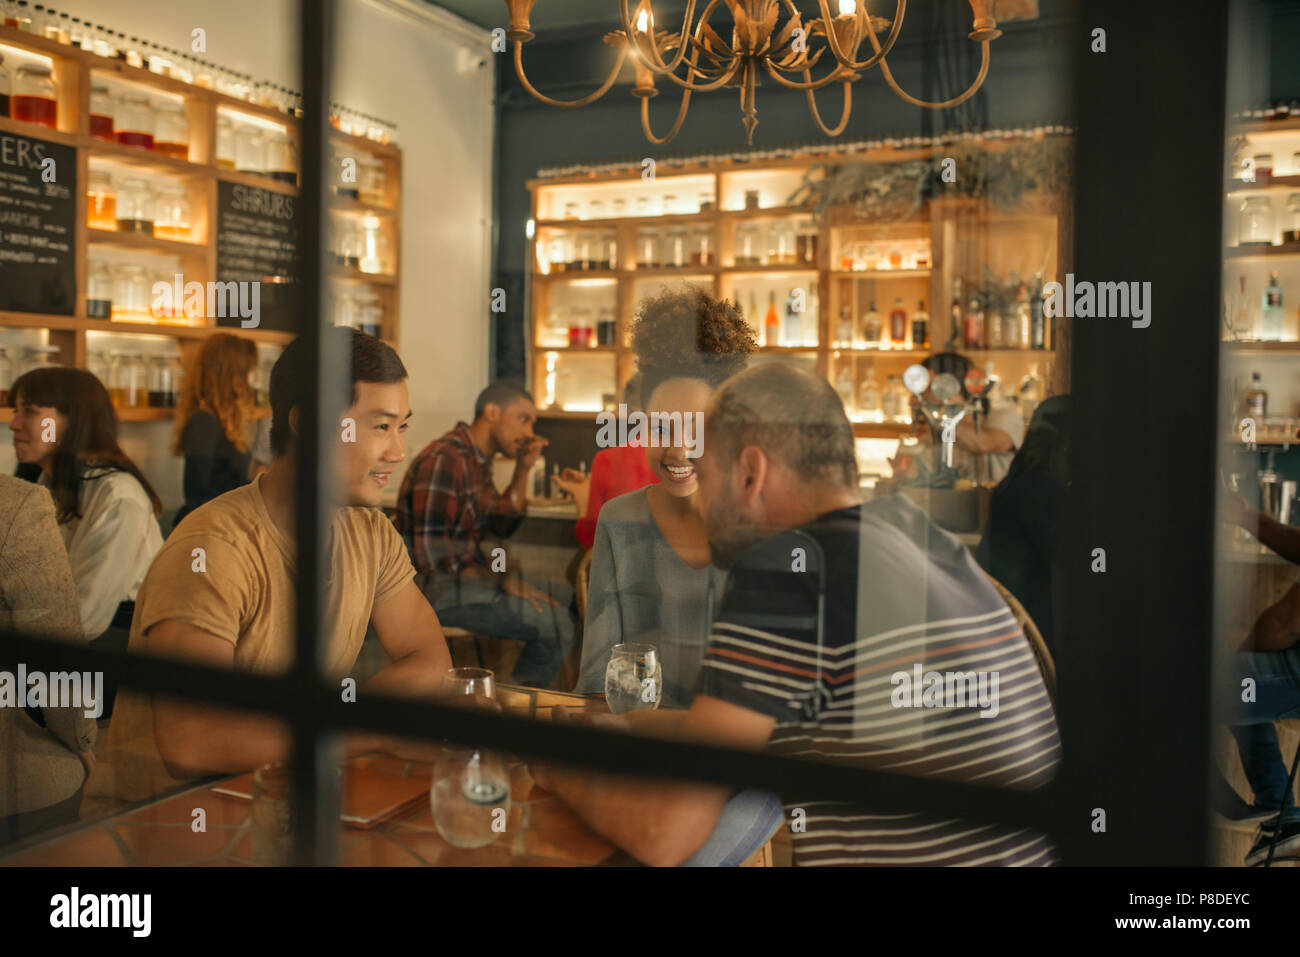 Smiling young friends sitting in a bar having drinks together Stock Photo